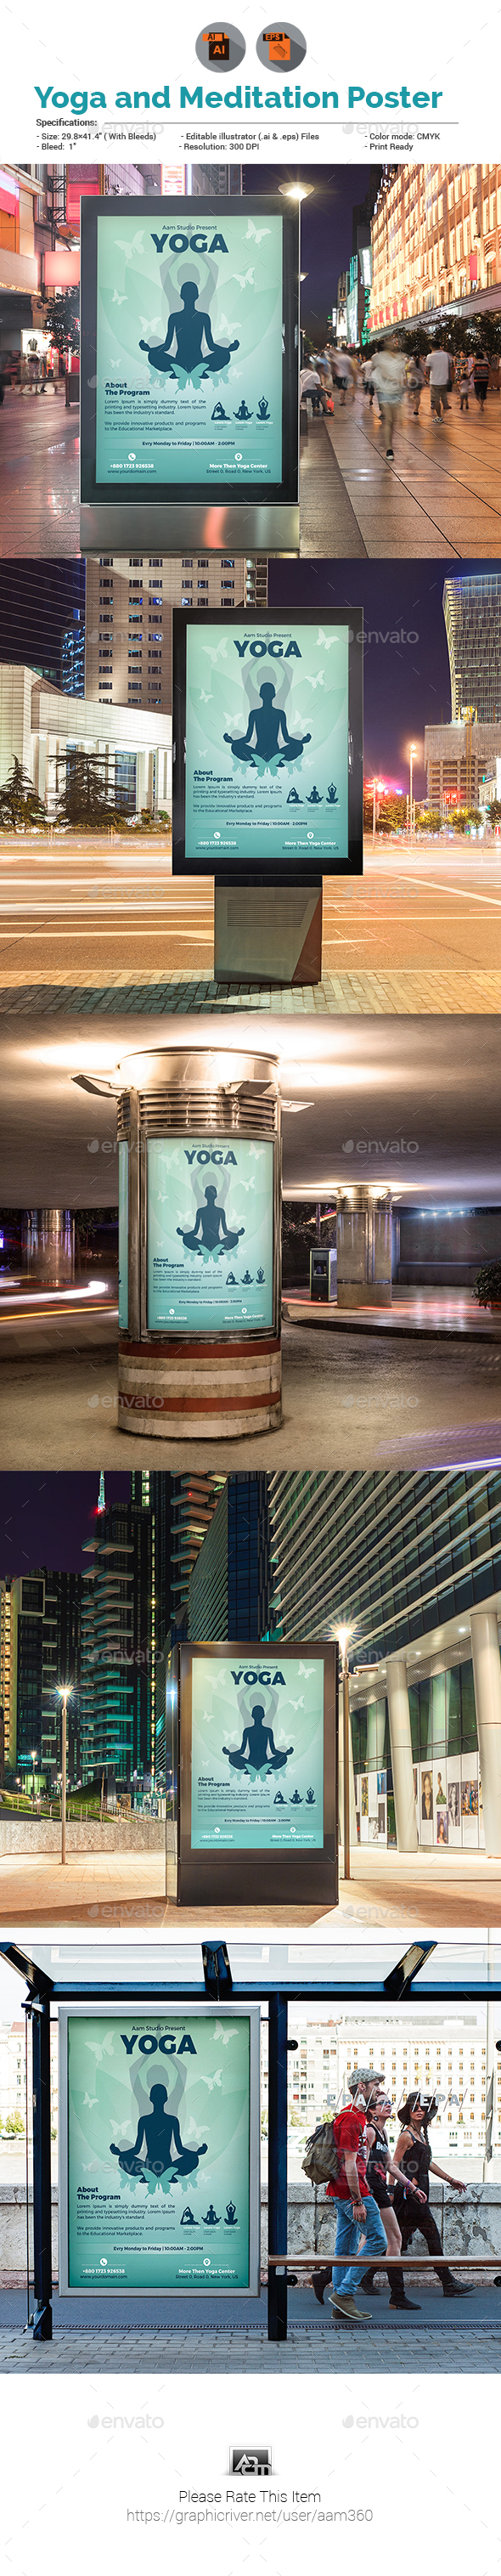 Yoga Poster Template - Signage Print Templates